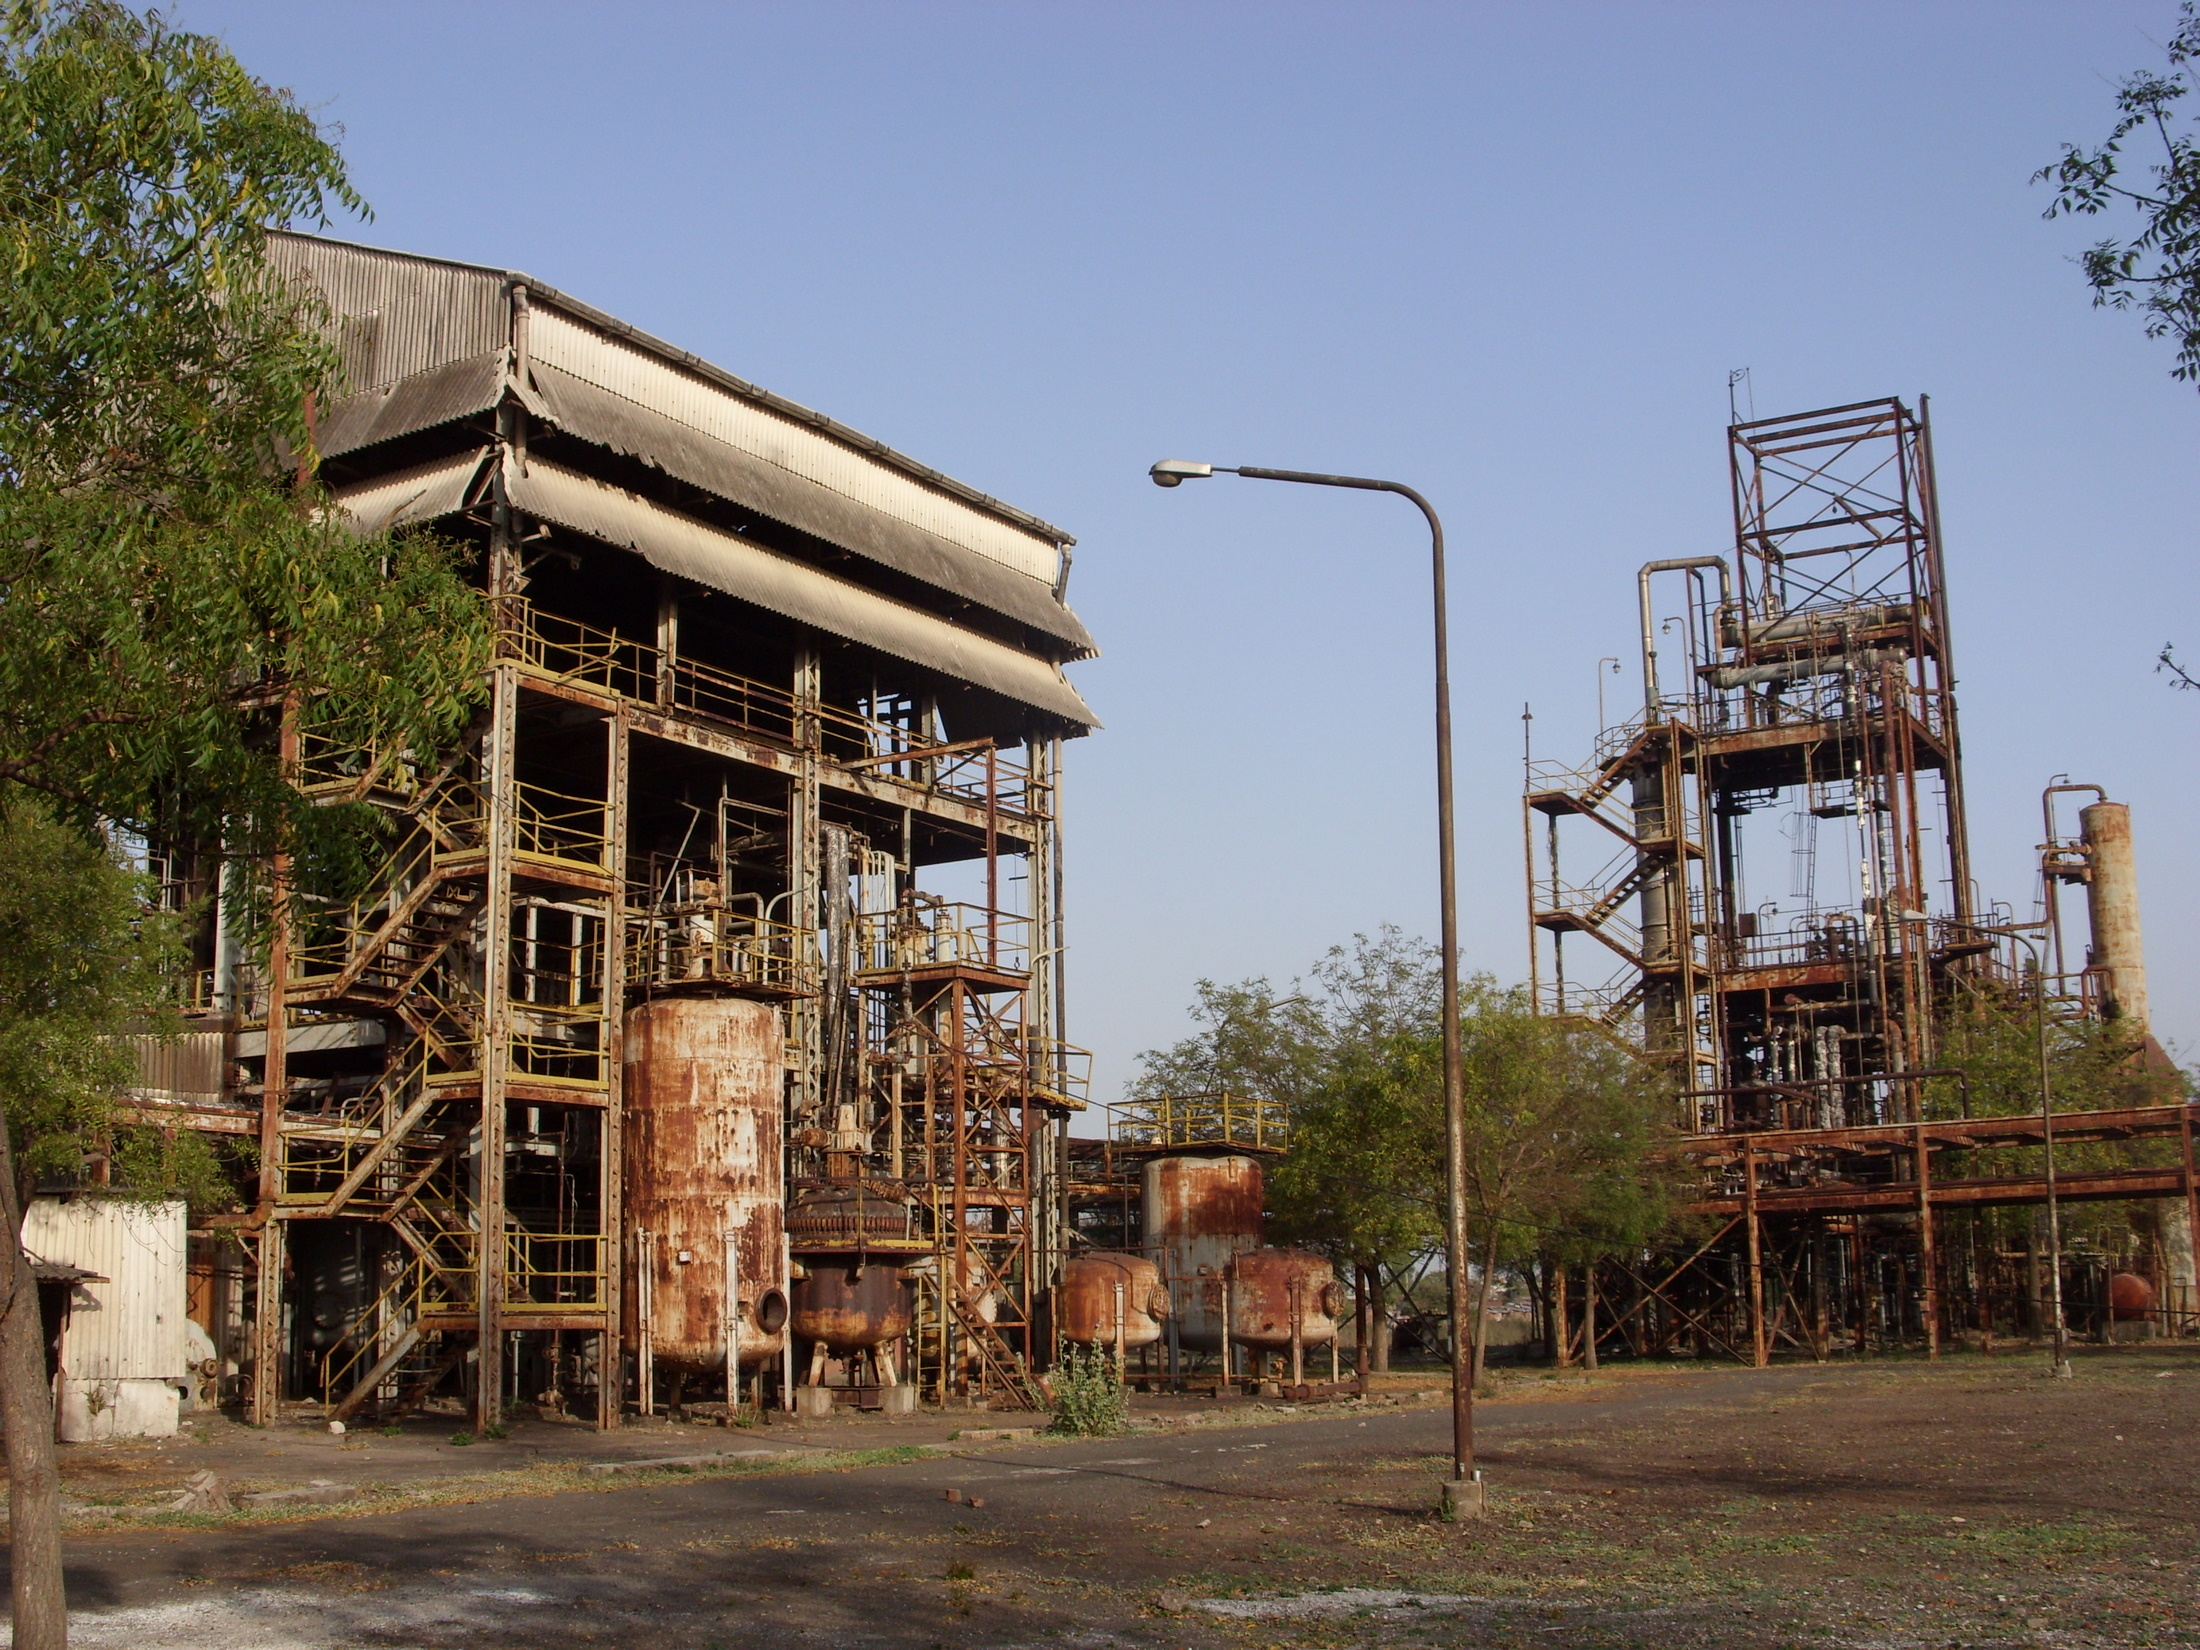 bhopal plant disaster The bhopal disaster and its aftermath: a review  ucc discontinued operation at its bhopal plant following the disaster but failed to clean up the industrial site .